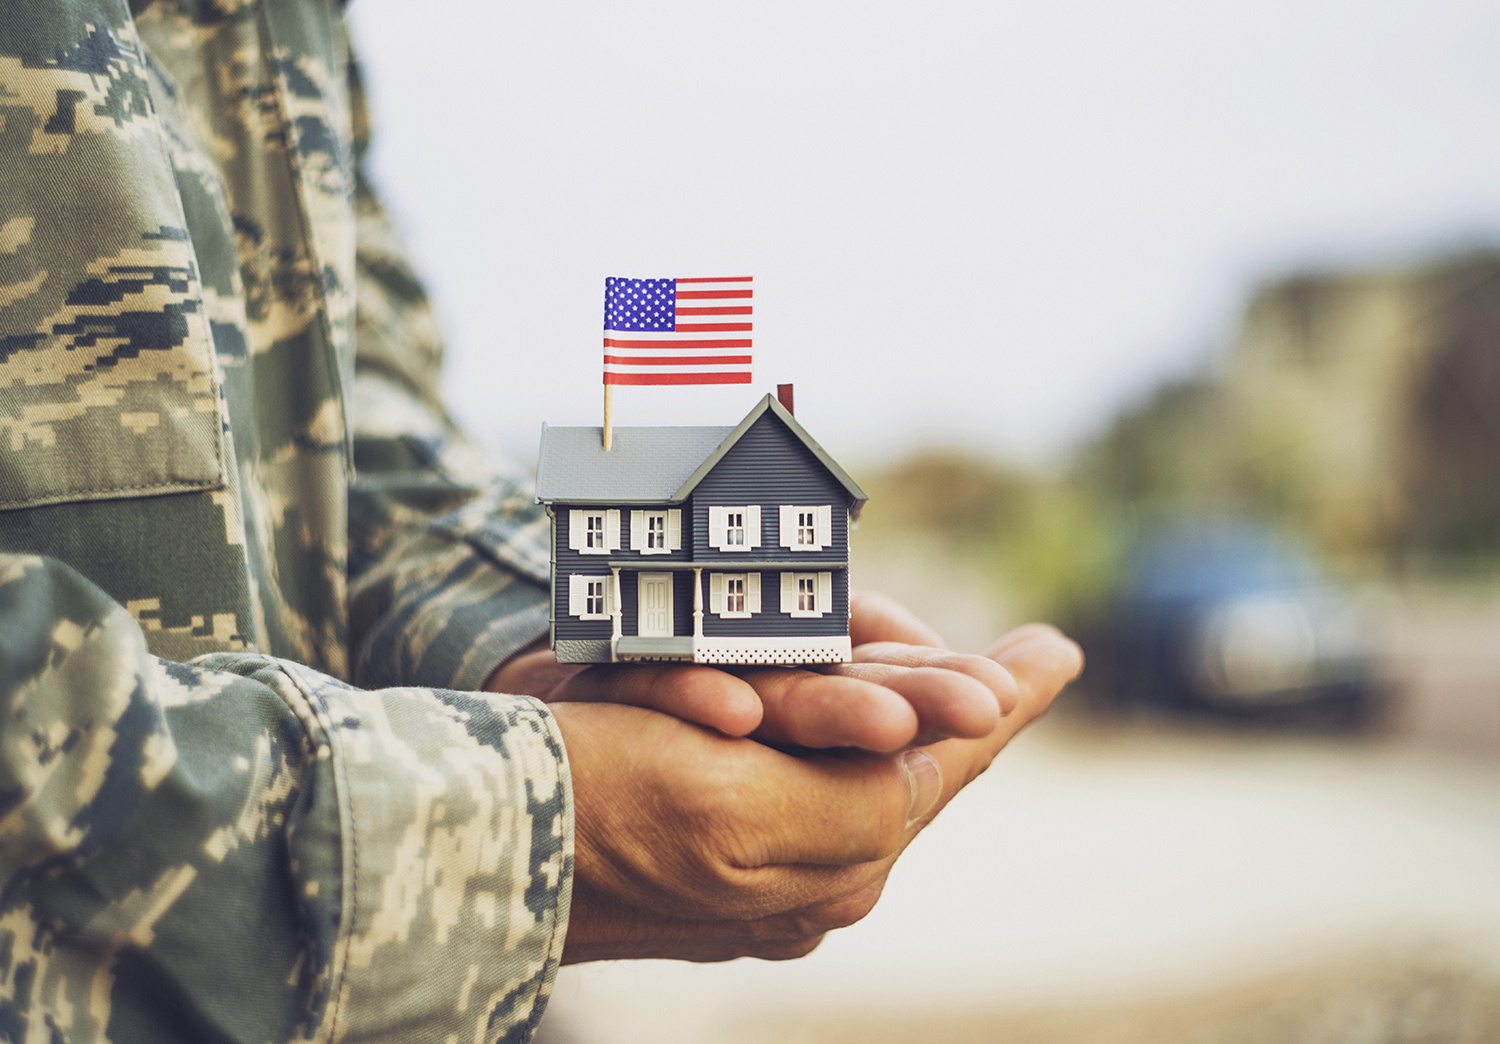 Military Person Holding a model home with a flag